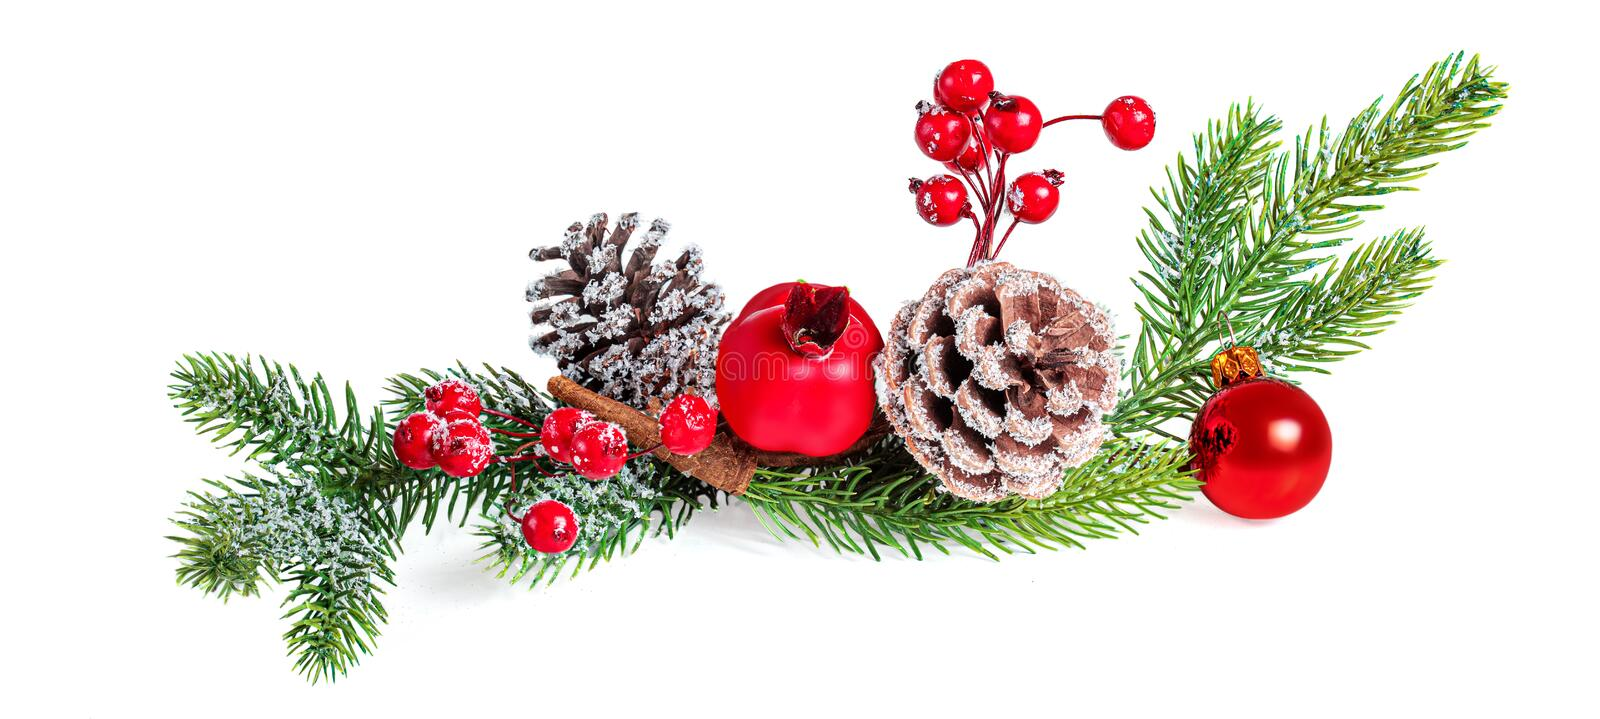 Christmas Tree Branch with Berries, Pine cone and red ball isolated on white background. Xmas Garland. New year Decoration royalty free stock images